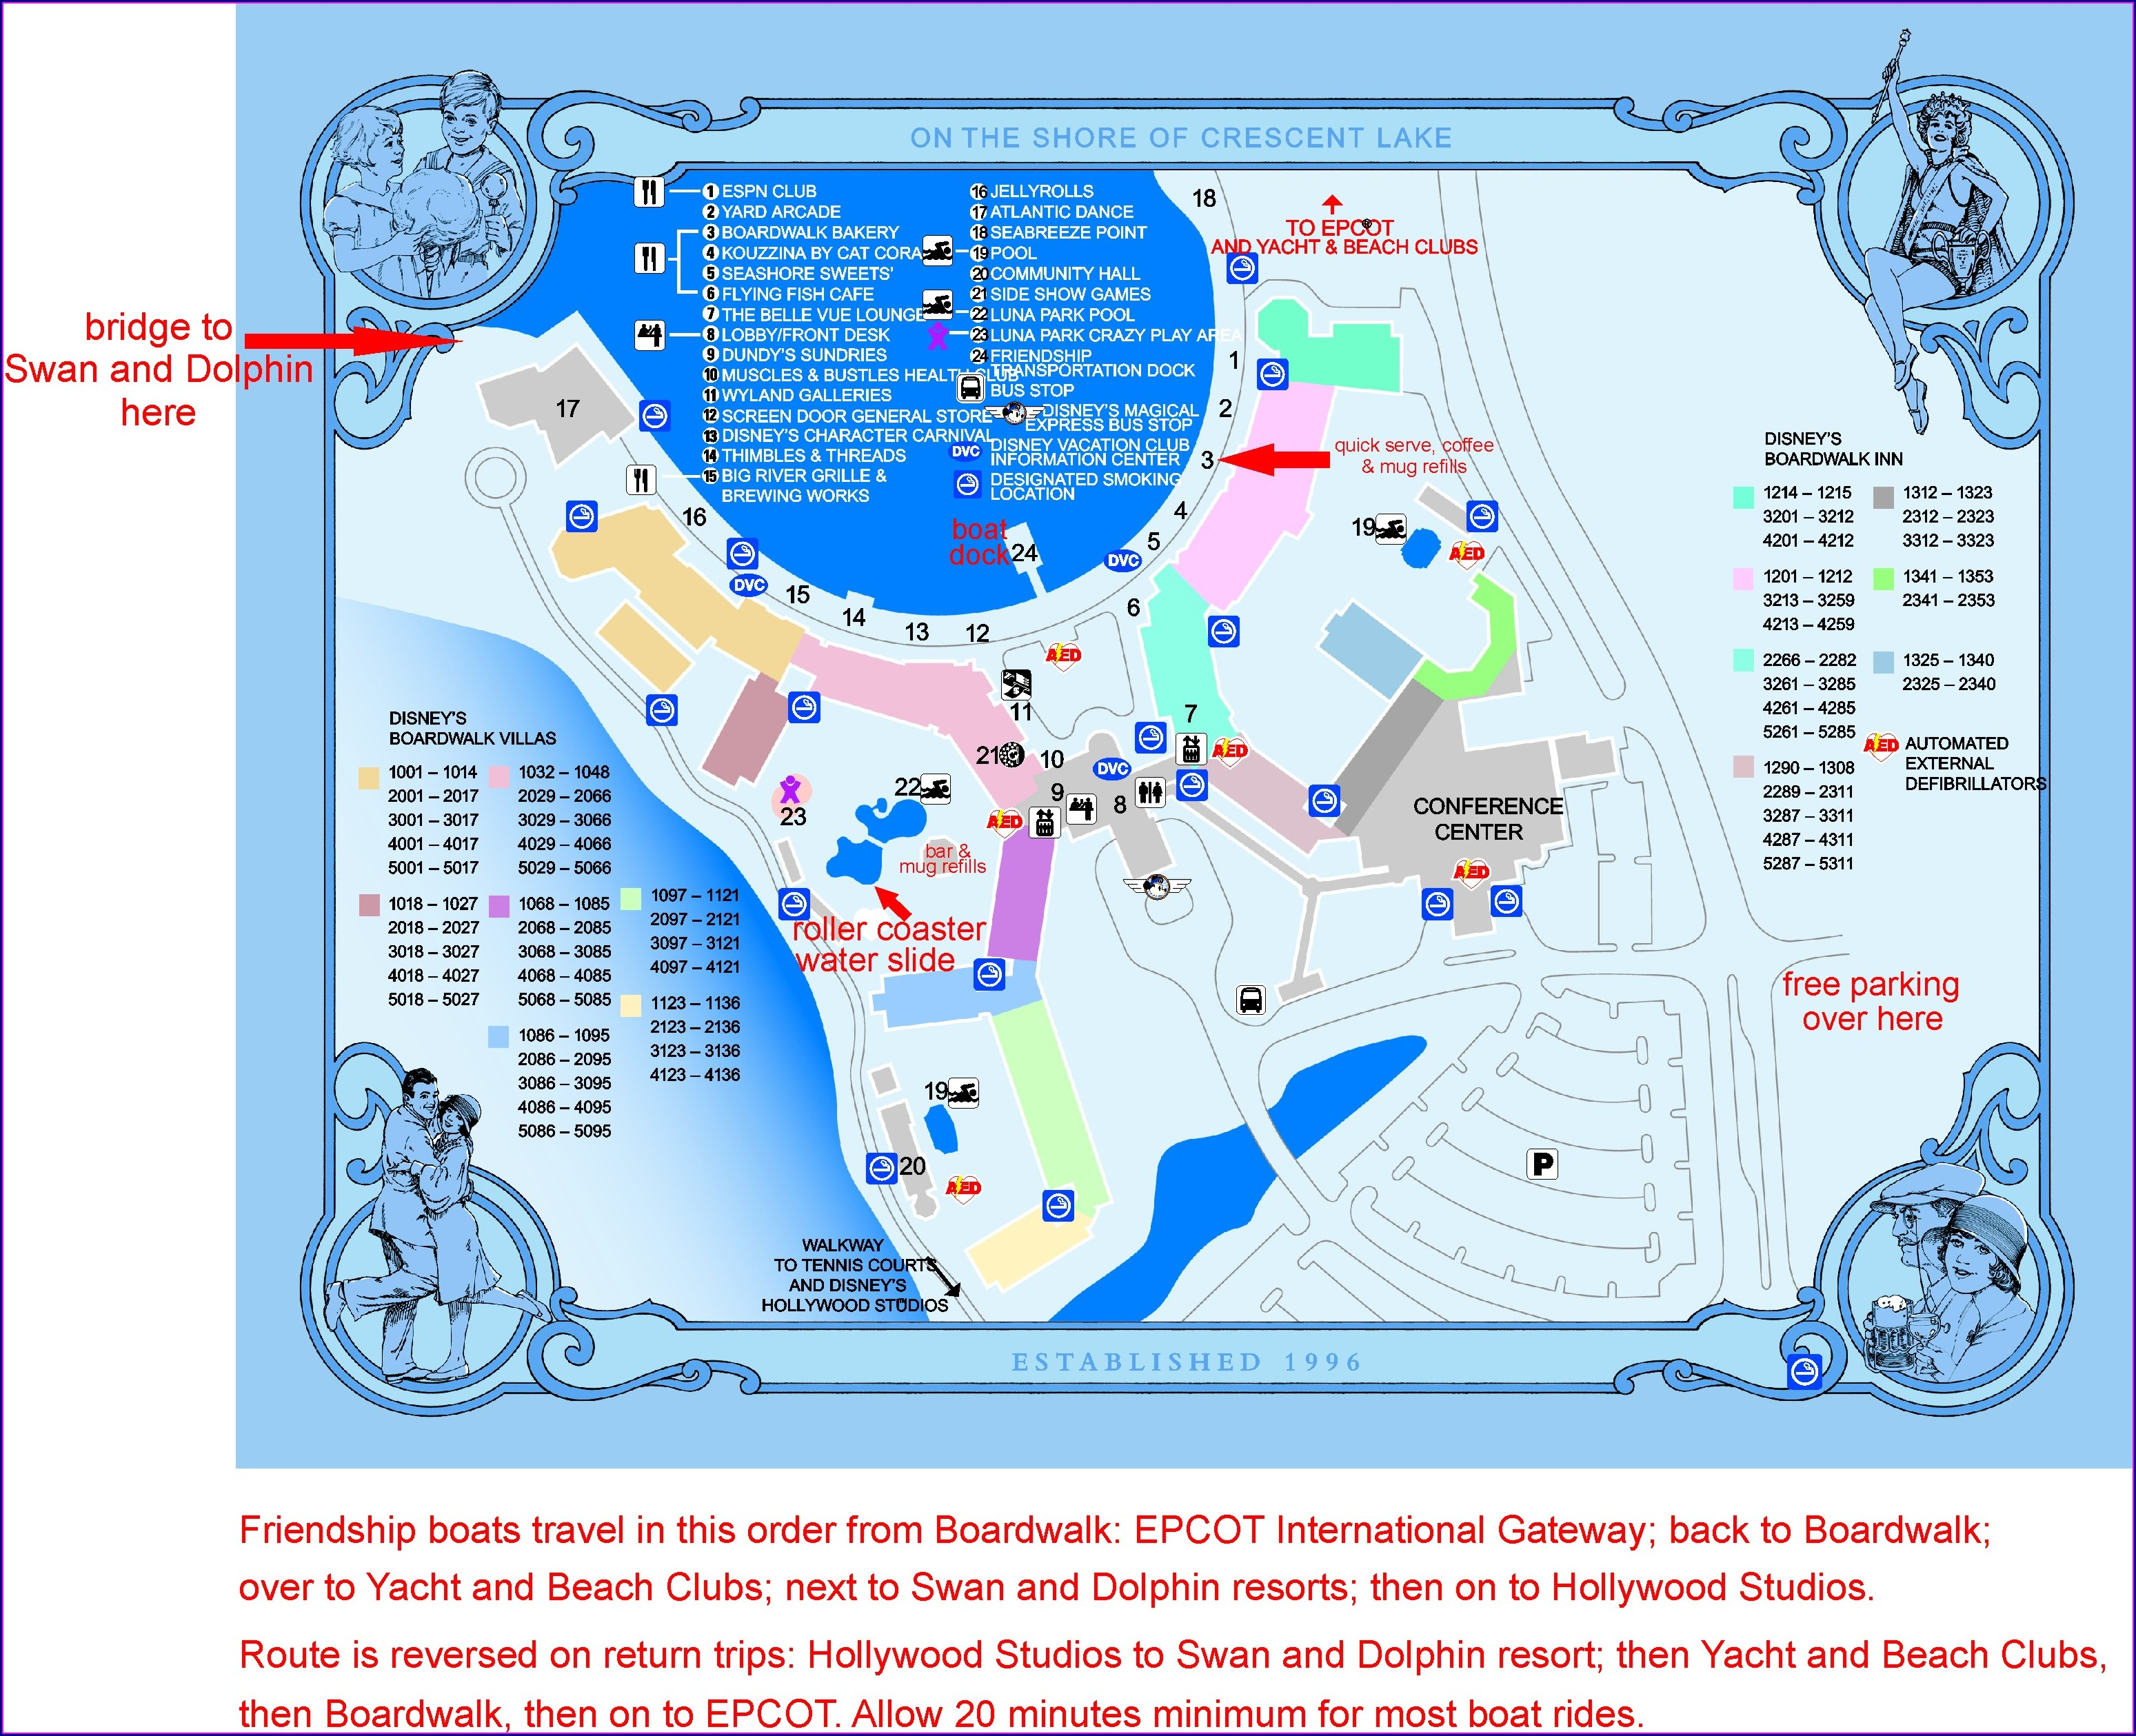 Disney Boardwalk Resort Room Map